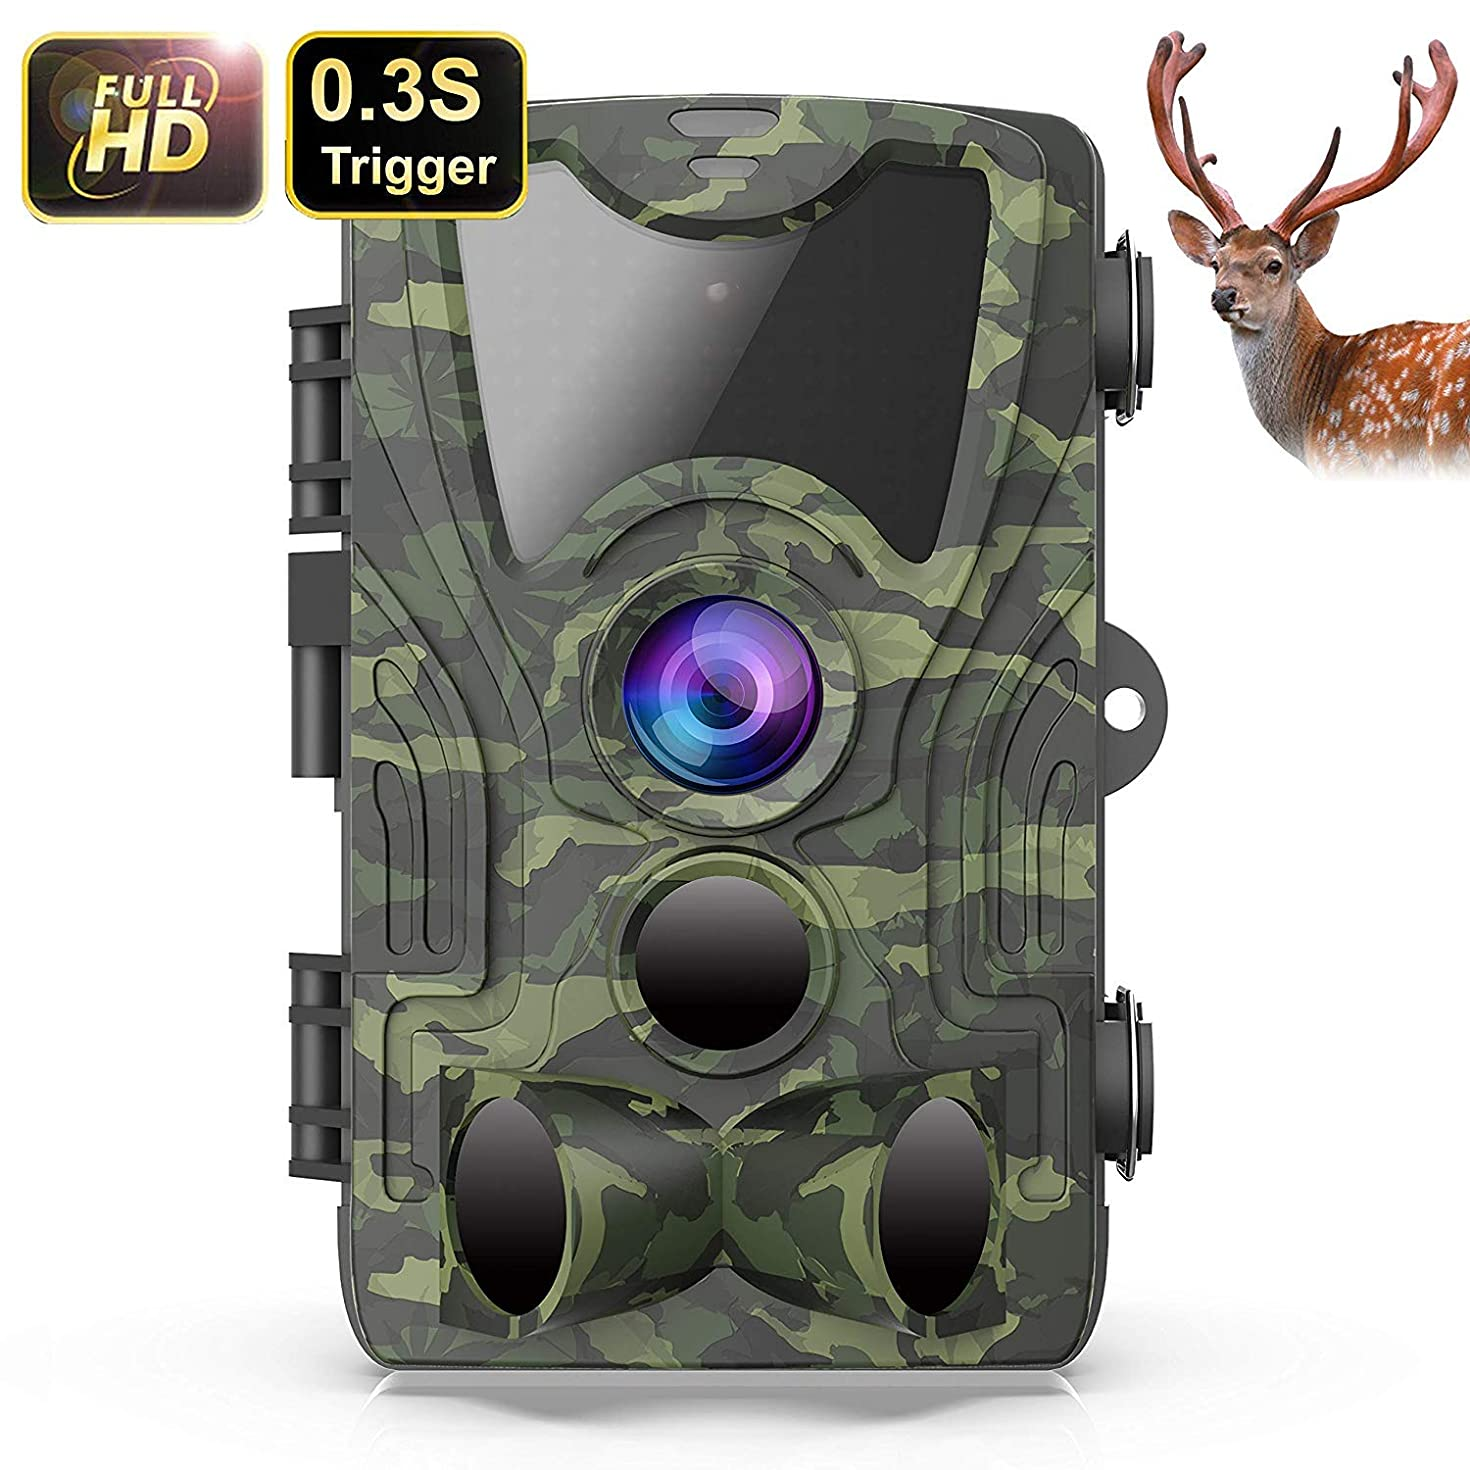 FHDCAM [2019 Upgraded Trail Camera, Scouting Hunting Cam with Motion Activated, 1080P HD, Night Vision, 120° Wide Angle Lens, IP65 Waterproof Game Camera for Wildlife -New Version